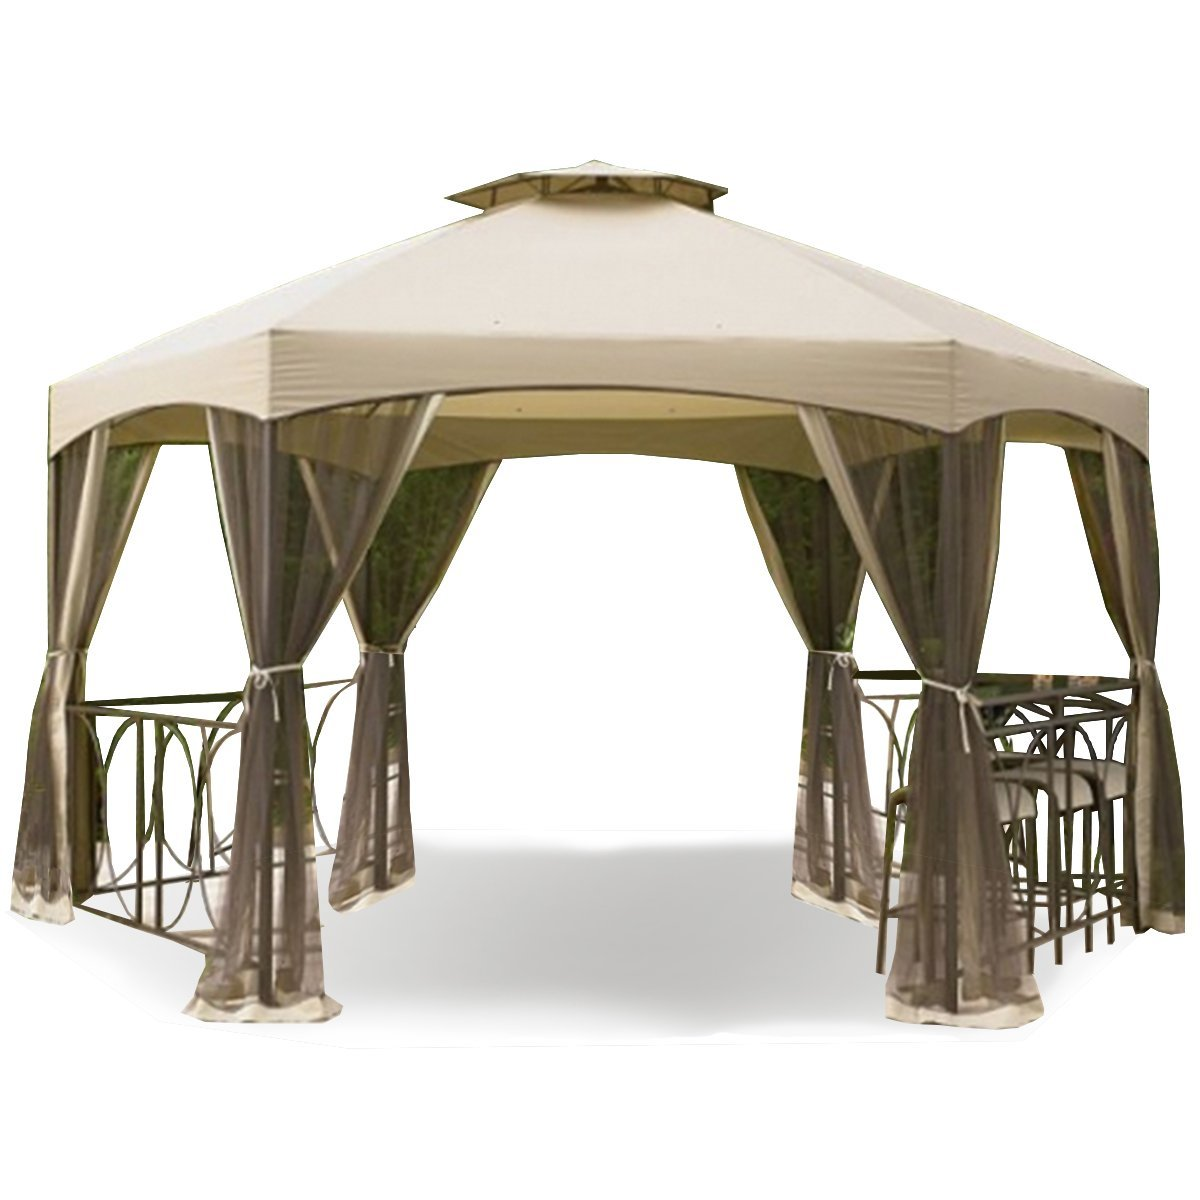 Amazon.com  Garden Winds Replacement Canopy for the Dutch Harbor Gazebo  Garden u0026 Outdoor  sc 1 st  Amazon.com & Amazon.com : Garden Winds Replacement Canopy for the Dutch Harbor ...